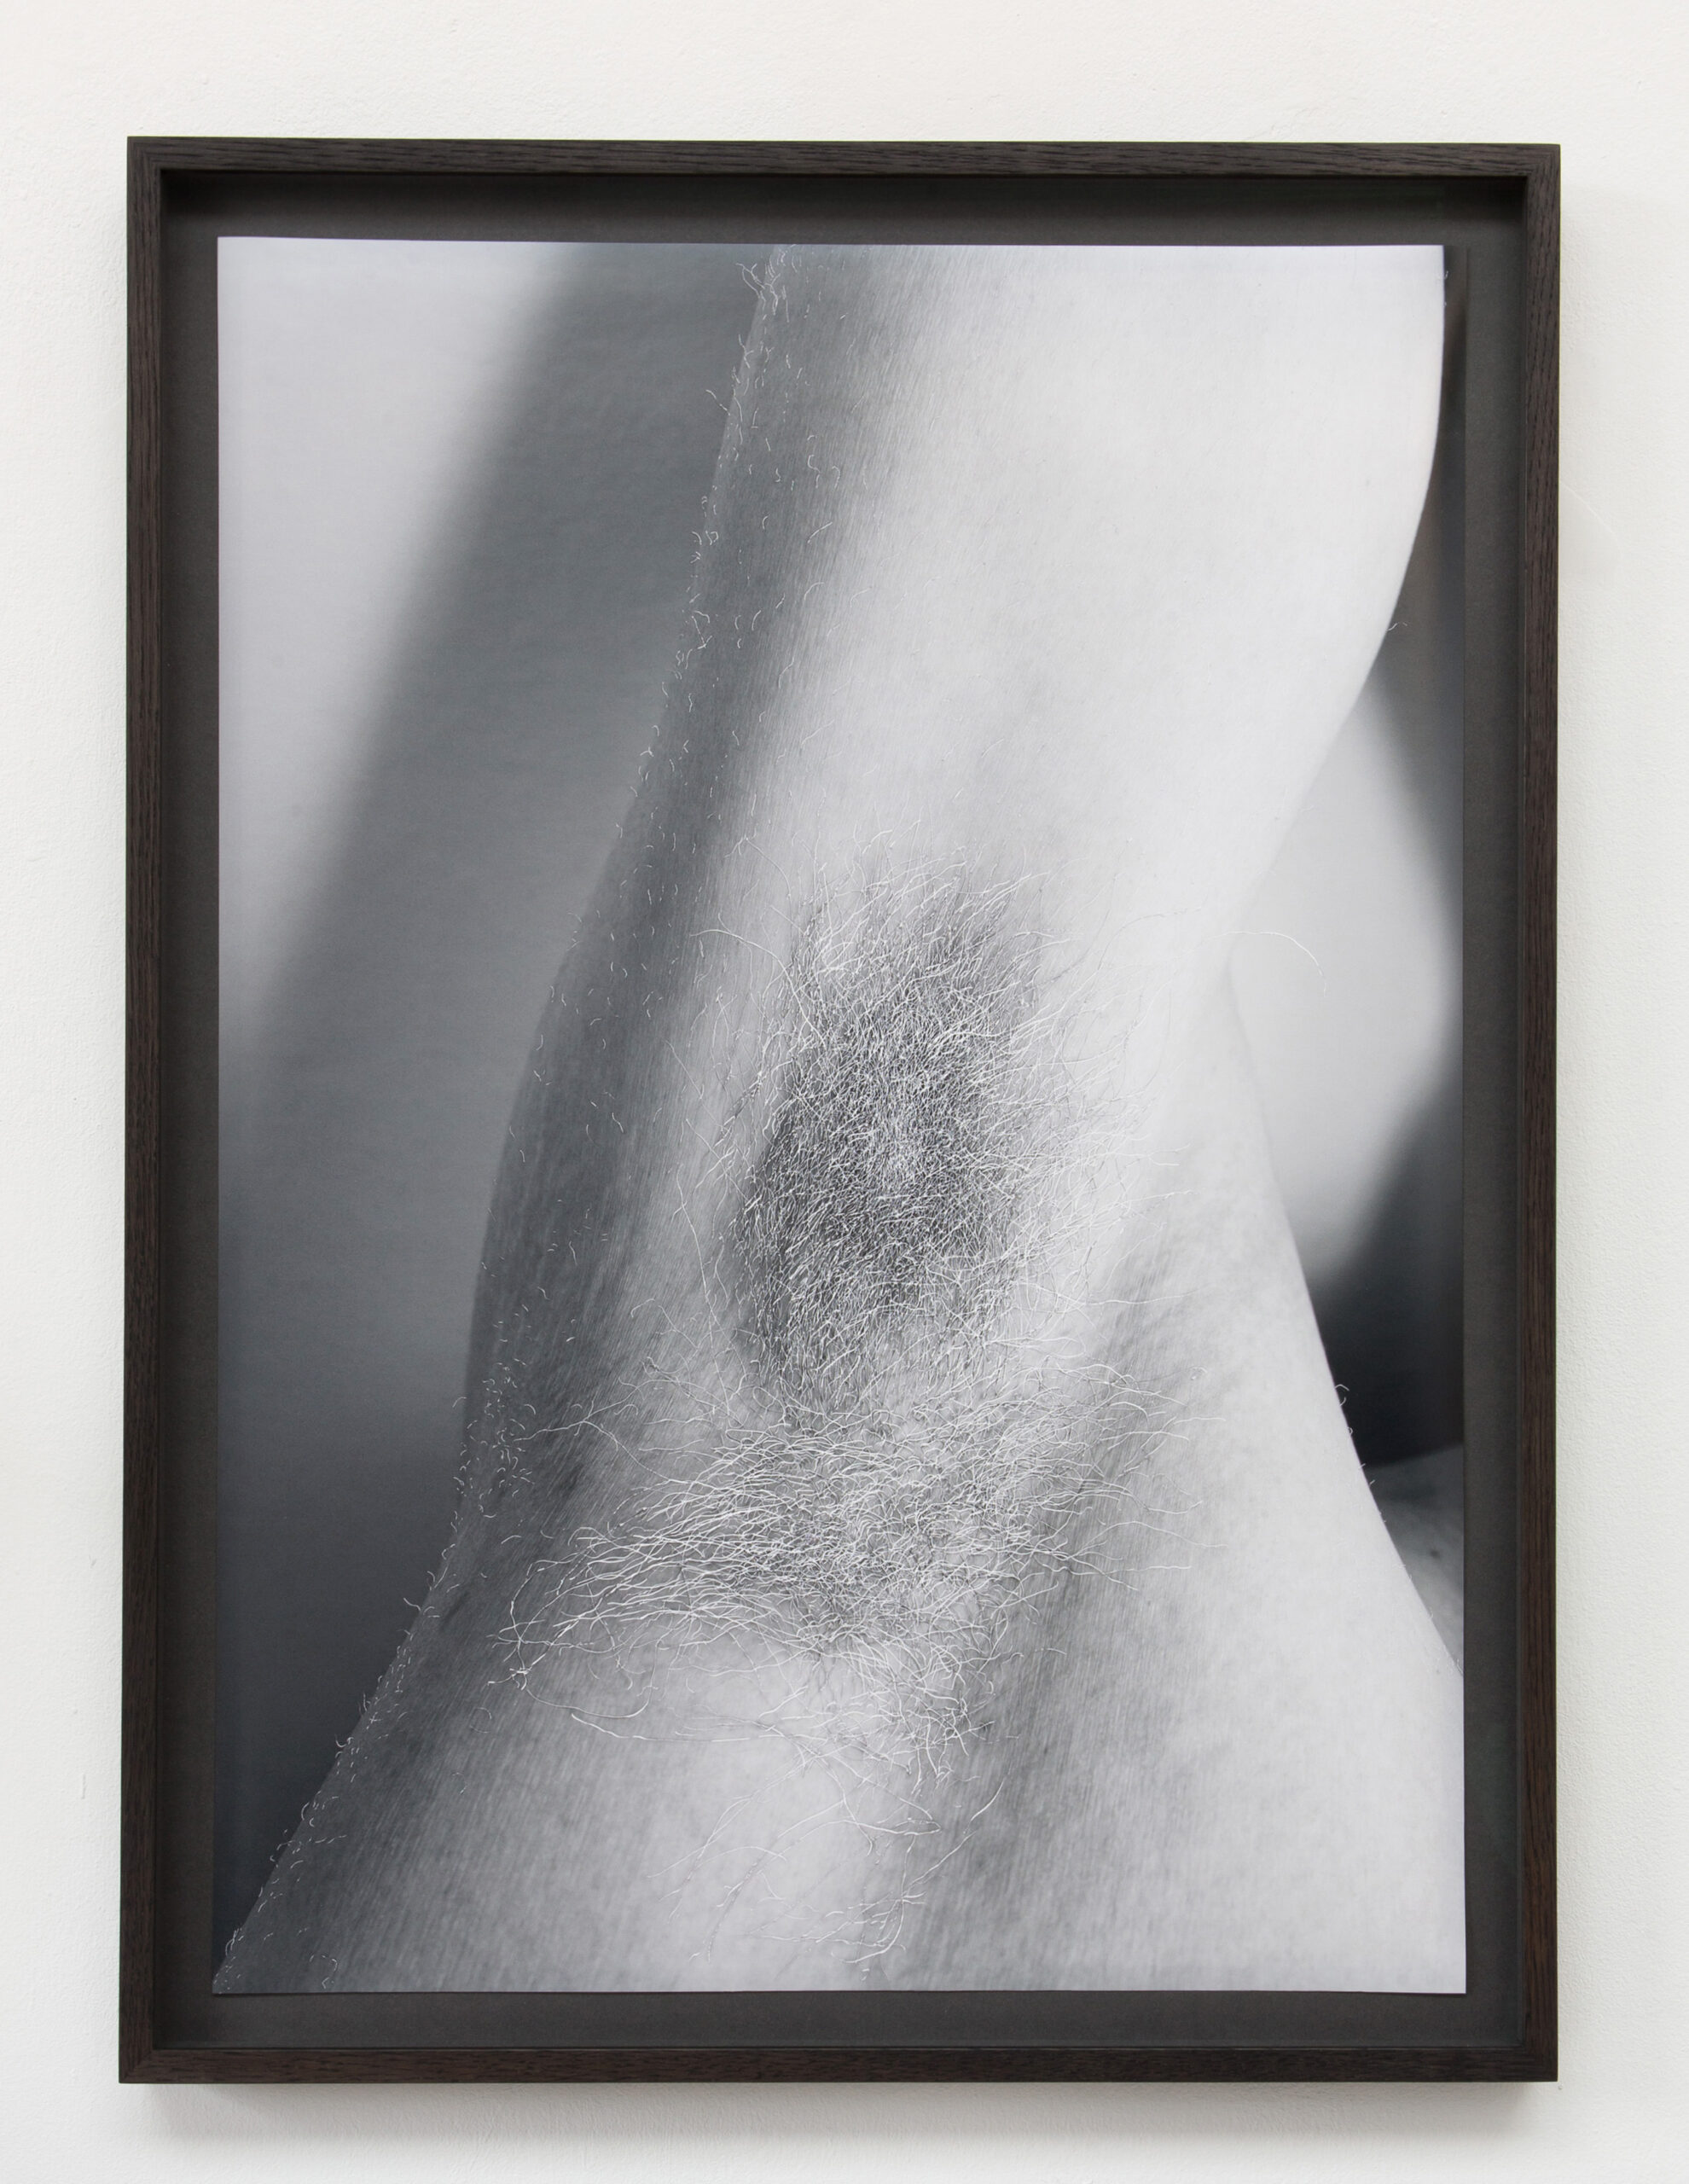 William Mackrell Axilla (2021) Etching on C-type print, 70 cm x 50 cm Float mounted, framed UV glass